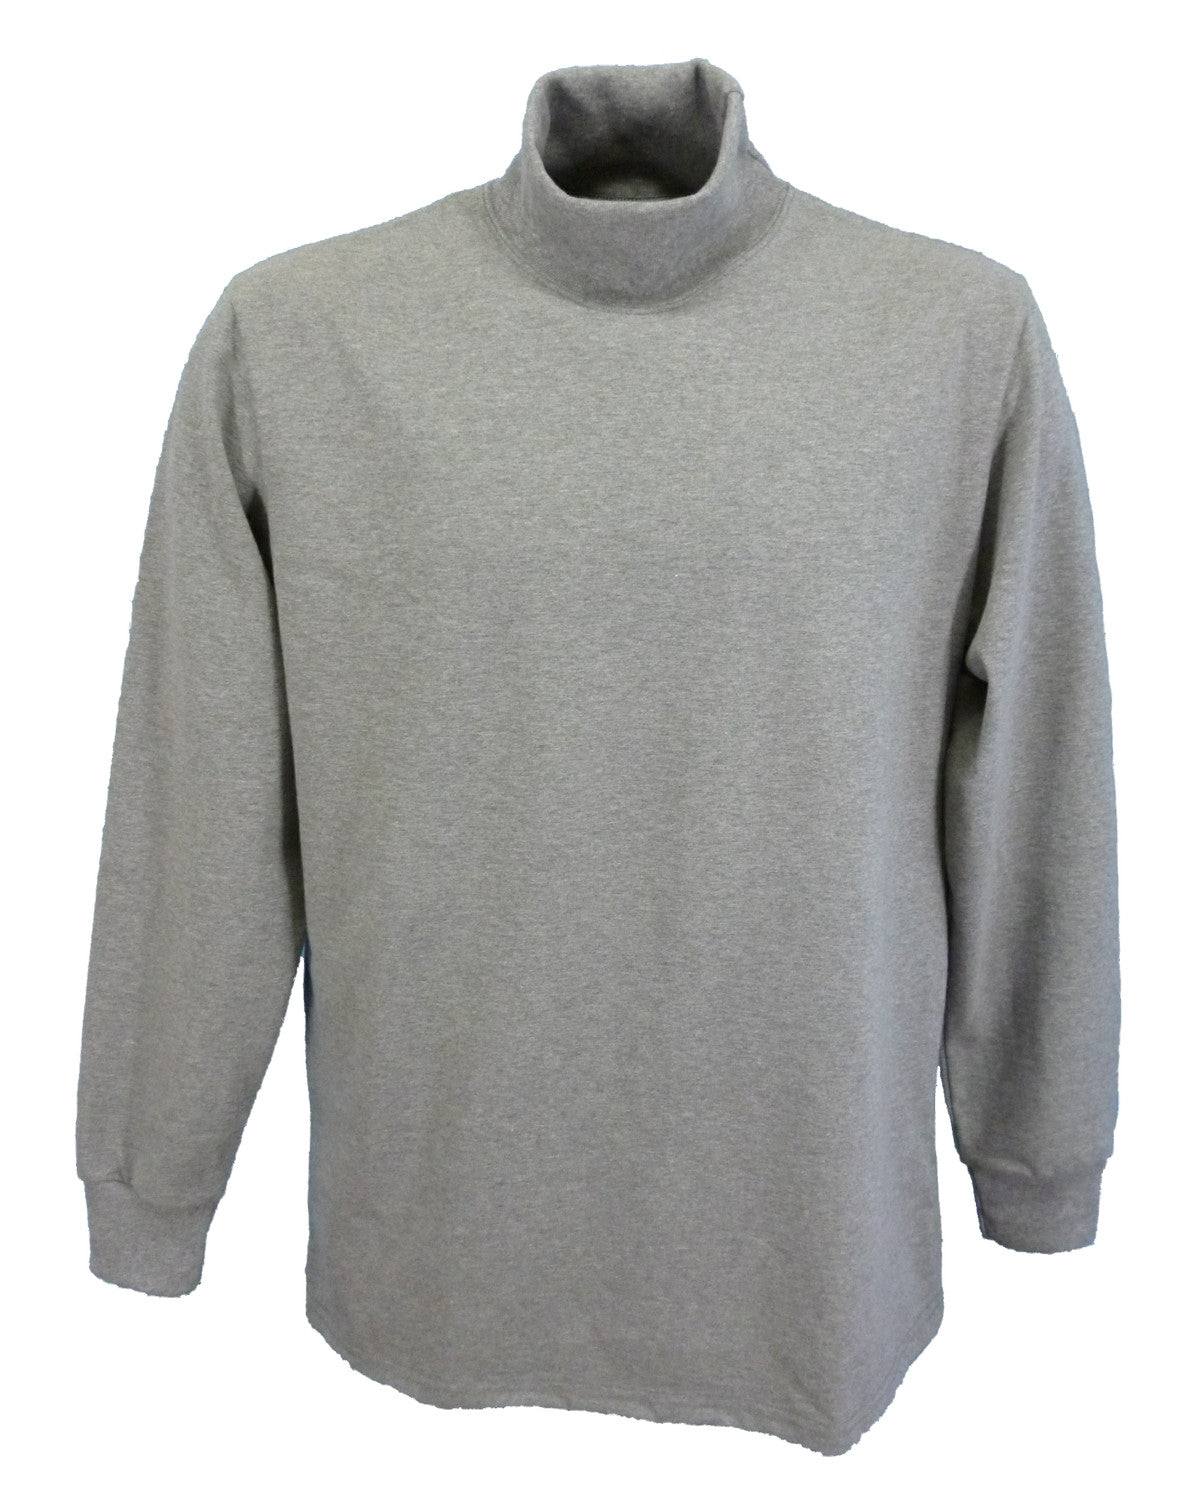 Grey marl polo neck sweater, made in England.